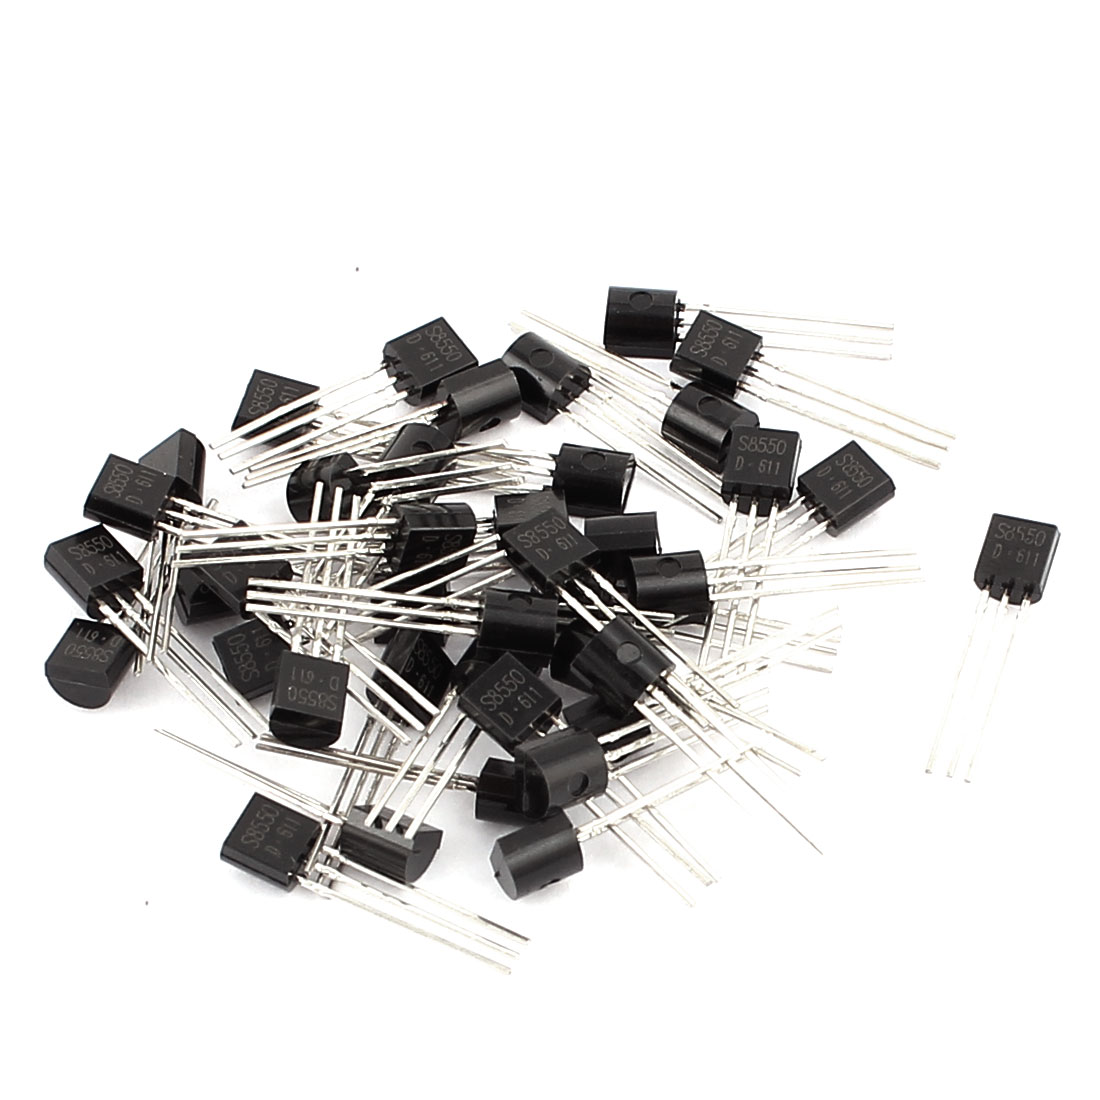 40 Pcs S8550 TO-92 PNP Bipolar Low Power Junction Transistors 40V 0.5A